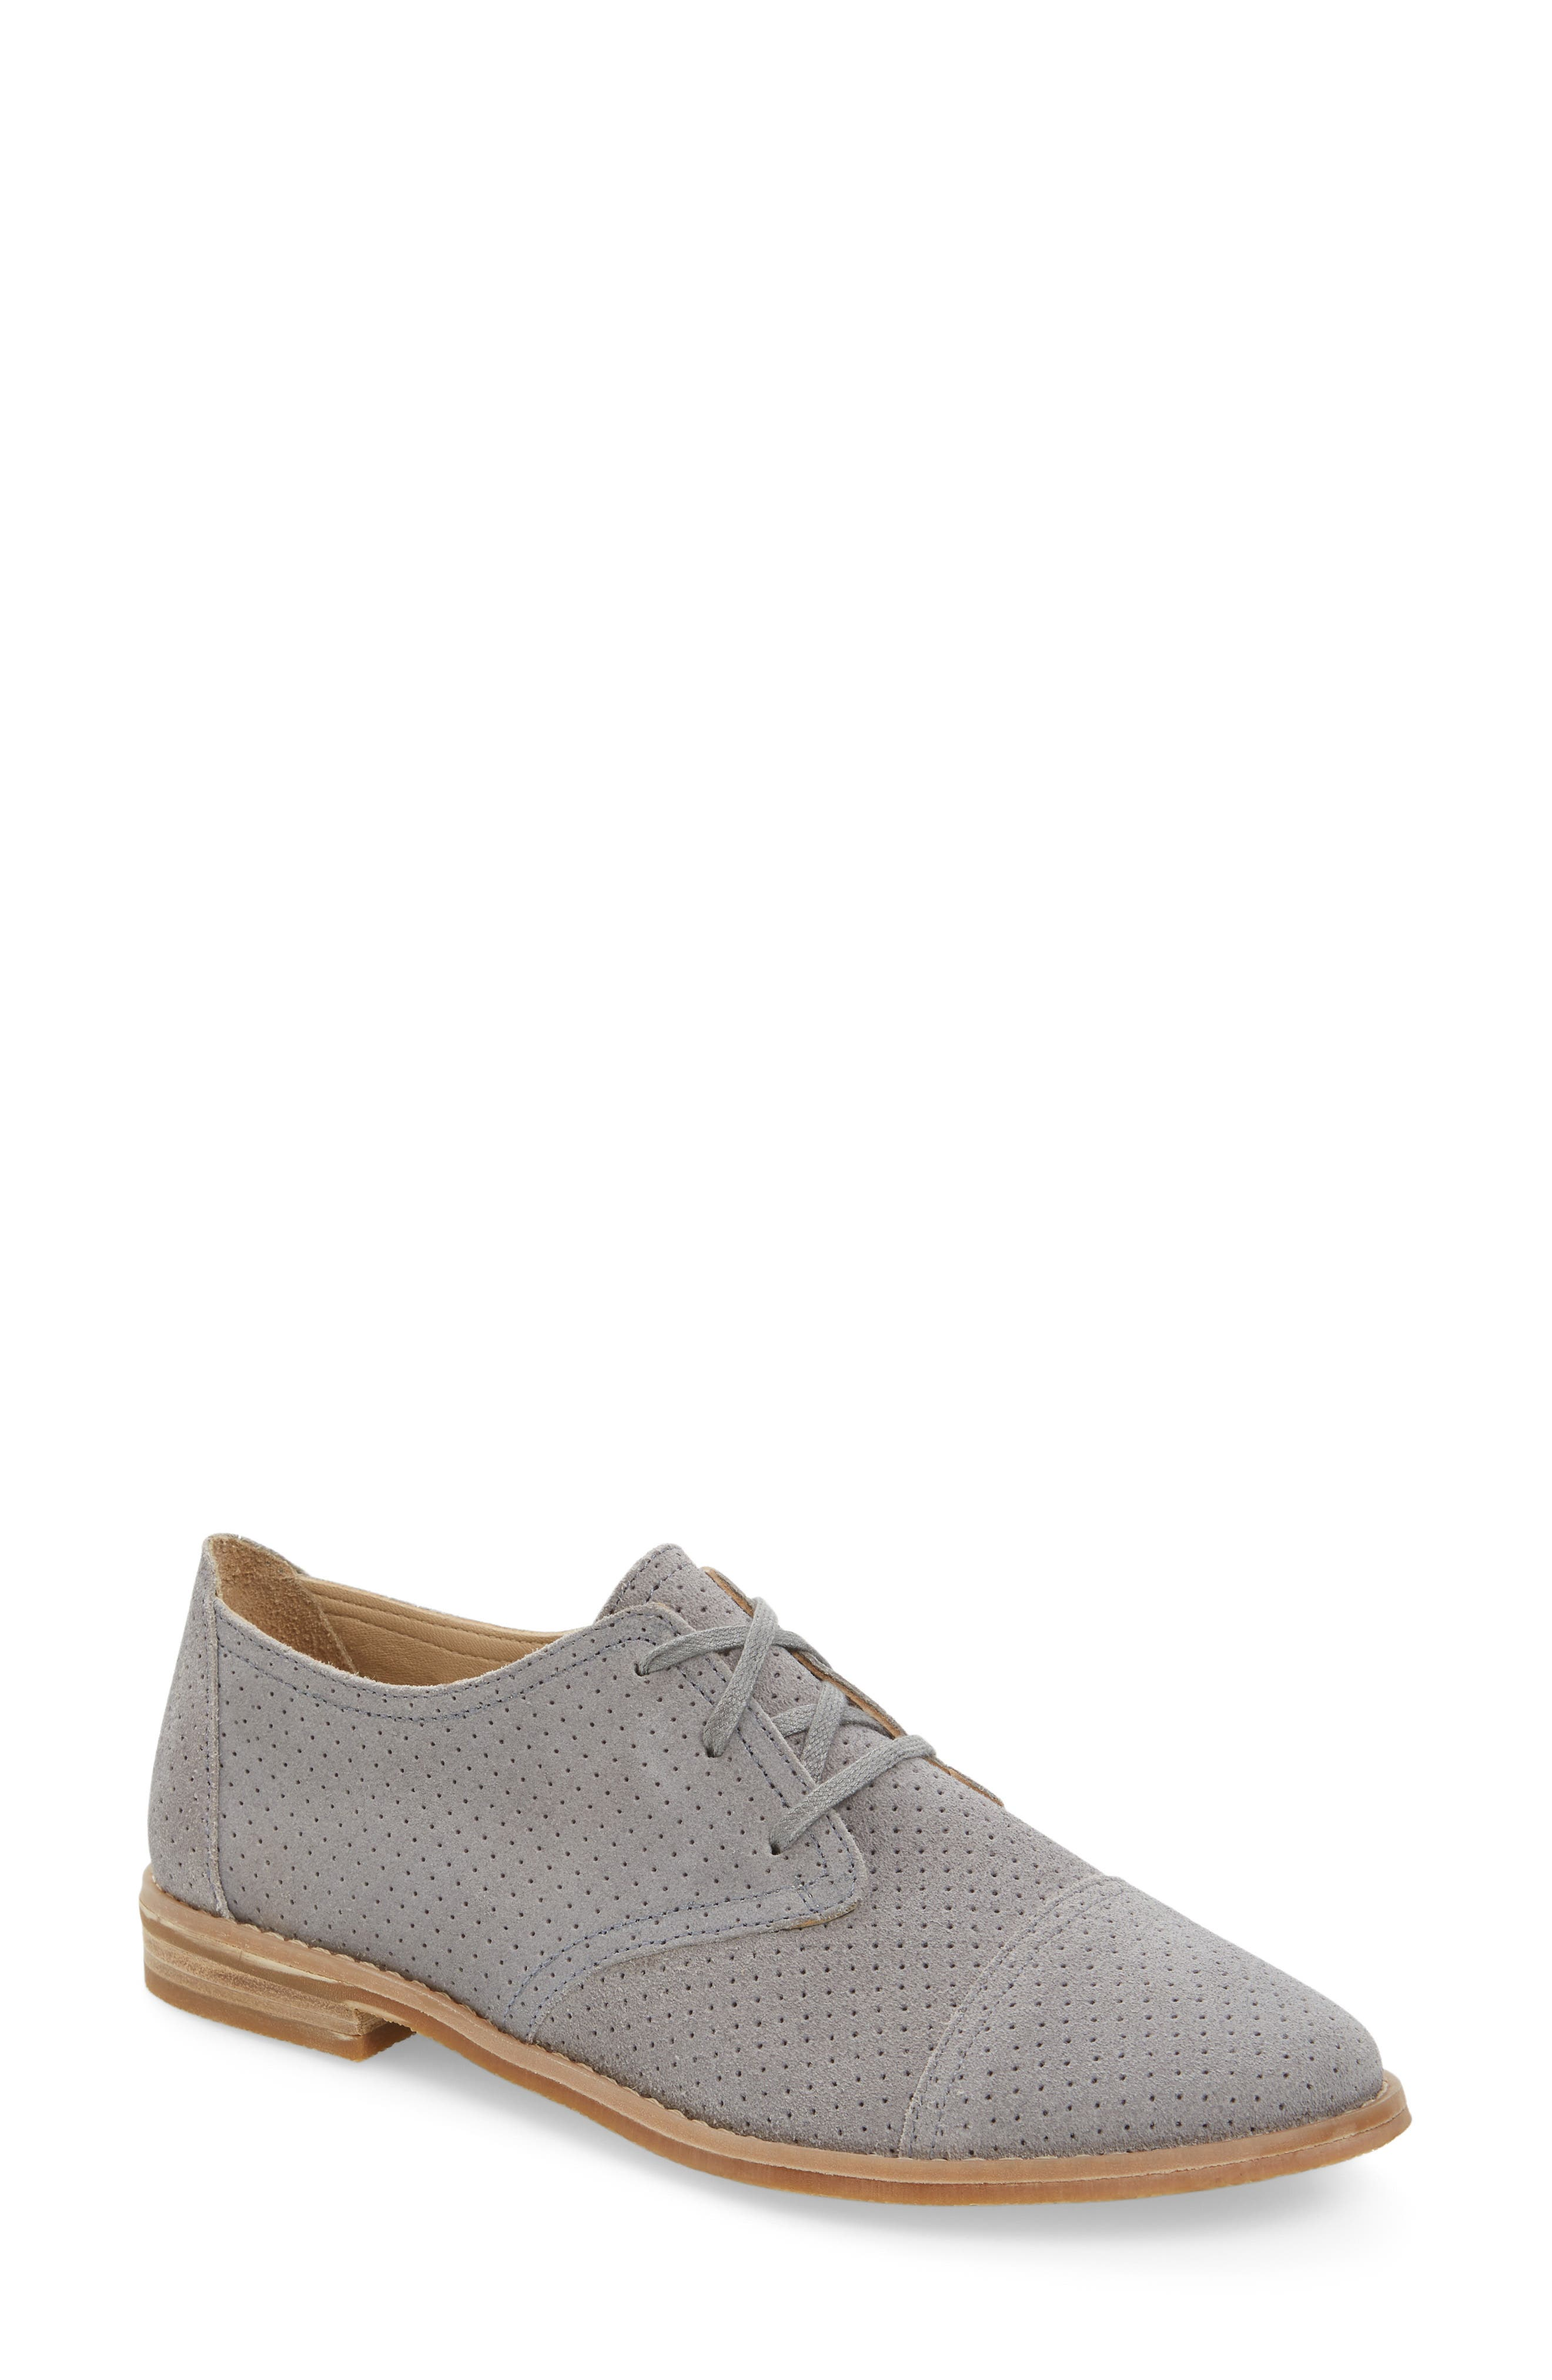 HUSH PUPPIES<SUP>®</SUP> Hush Puppies Aiden Clever Oxford, Main, color, 025